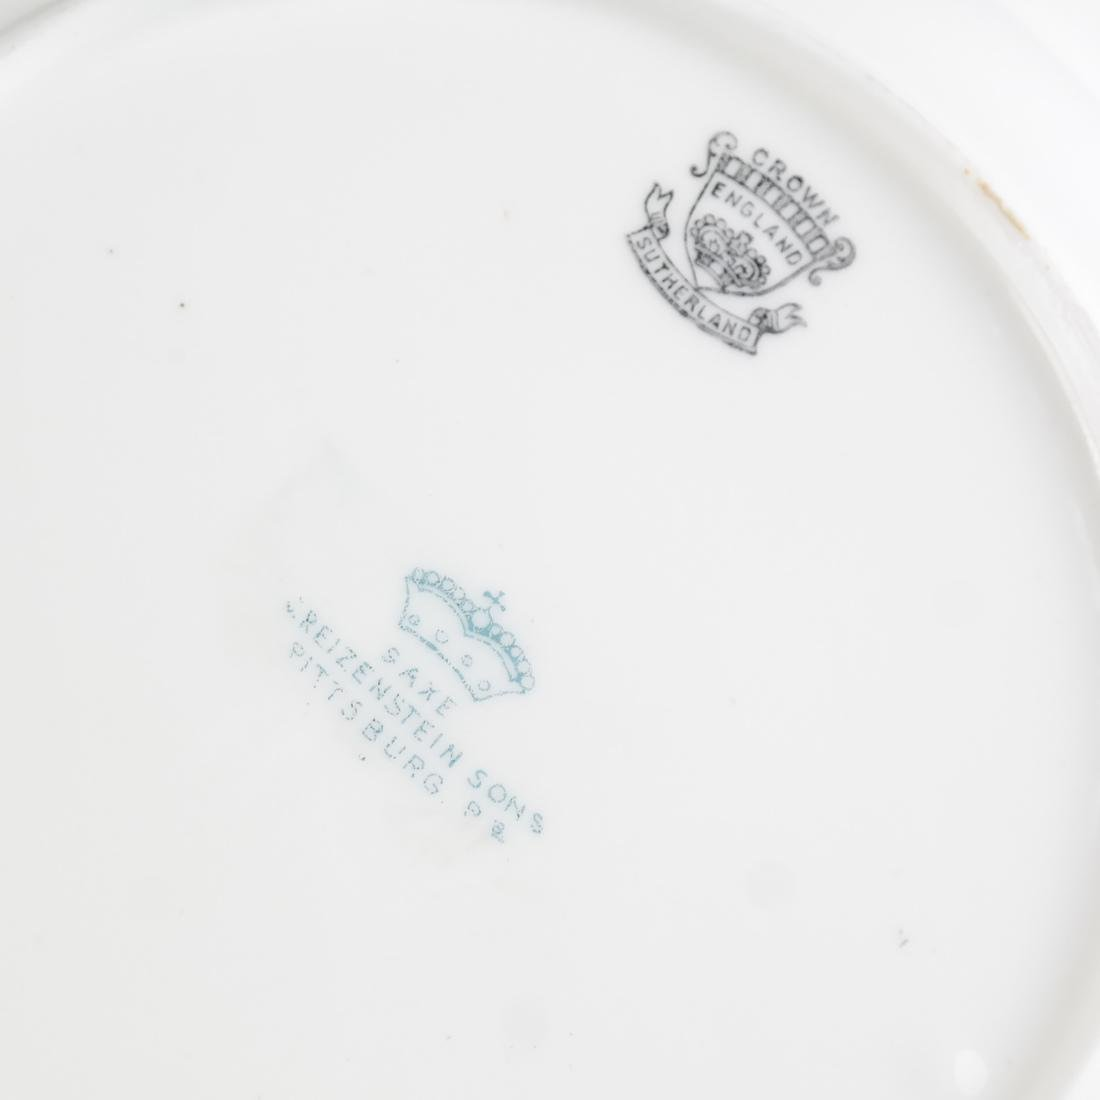 8 Crown, England Floral Decorated Bowls - 5